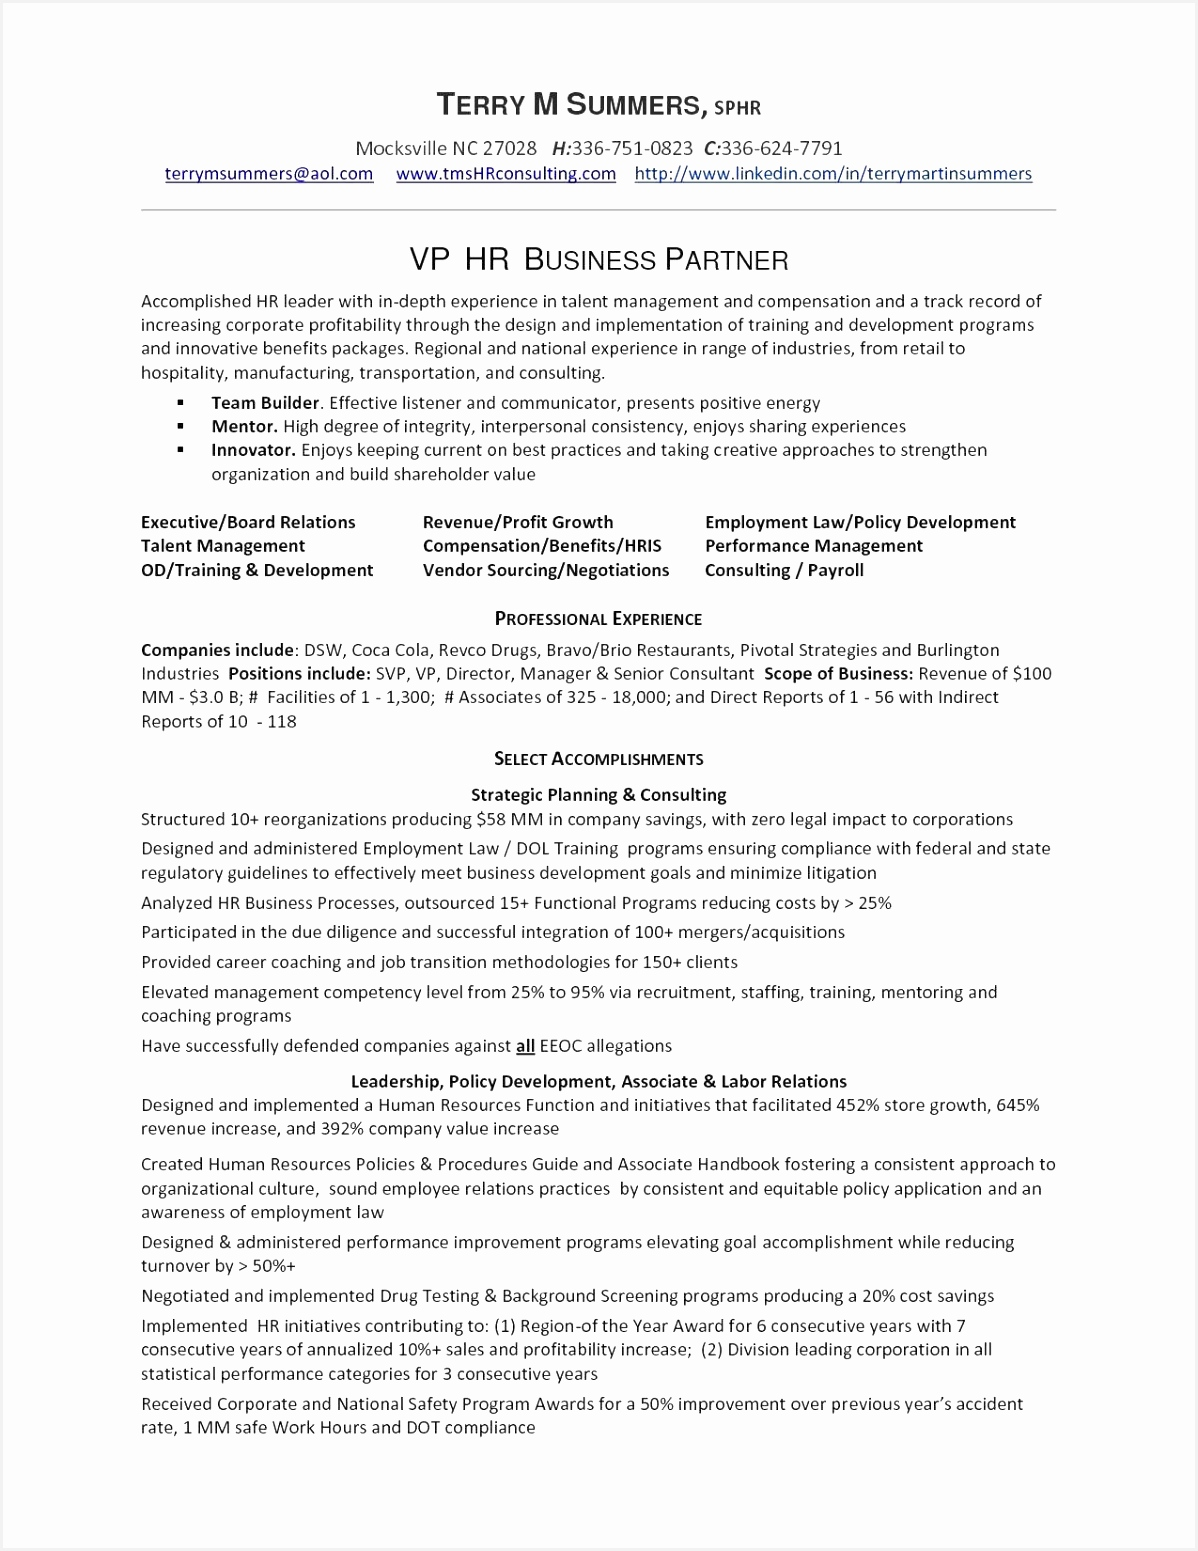 Travel Agent Resume Summary – Travel Agents Business Plan Luxury Care Home Business Plan Examples 15511198vkry